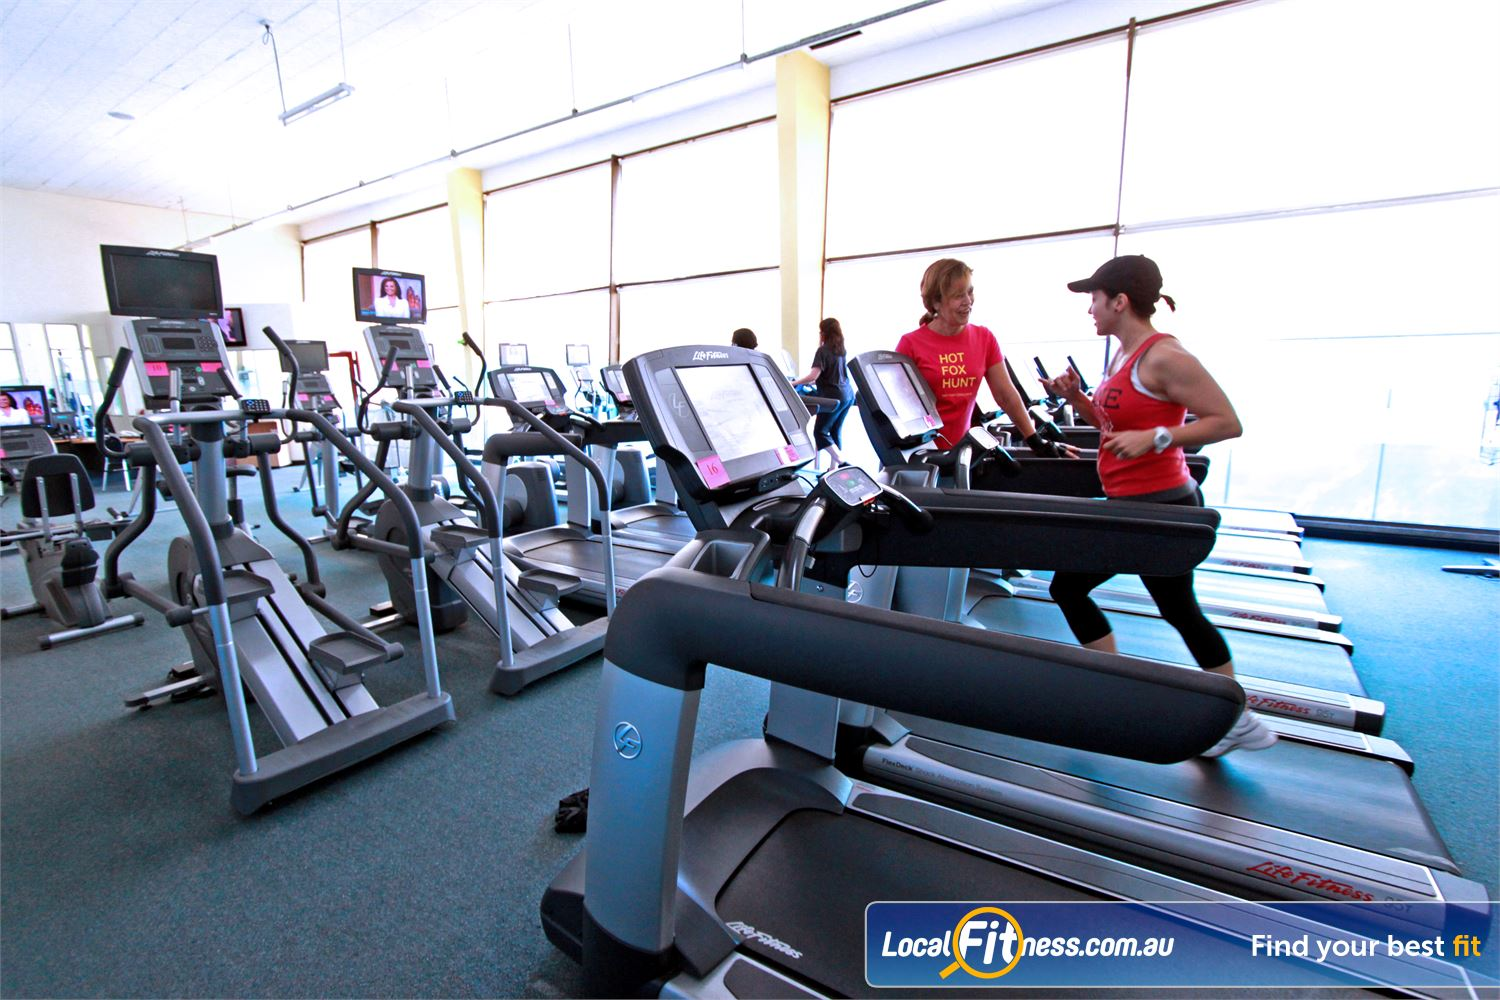 Fernwood Fitness Liverpool Liverpool personal trainers will help you enjoy fitness cardio training.